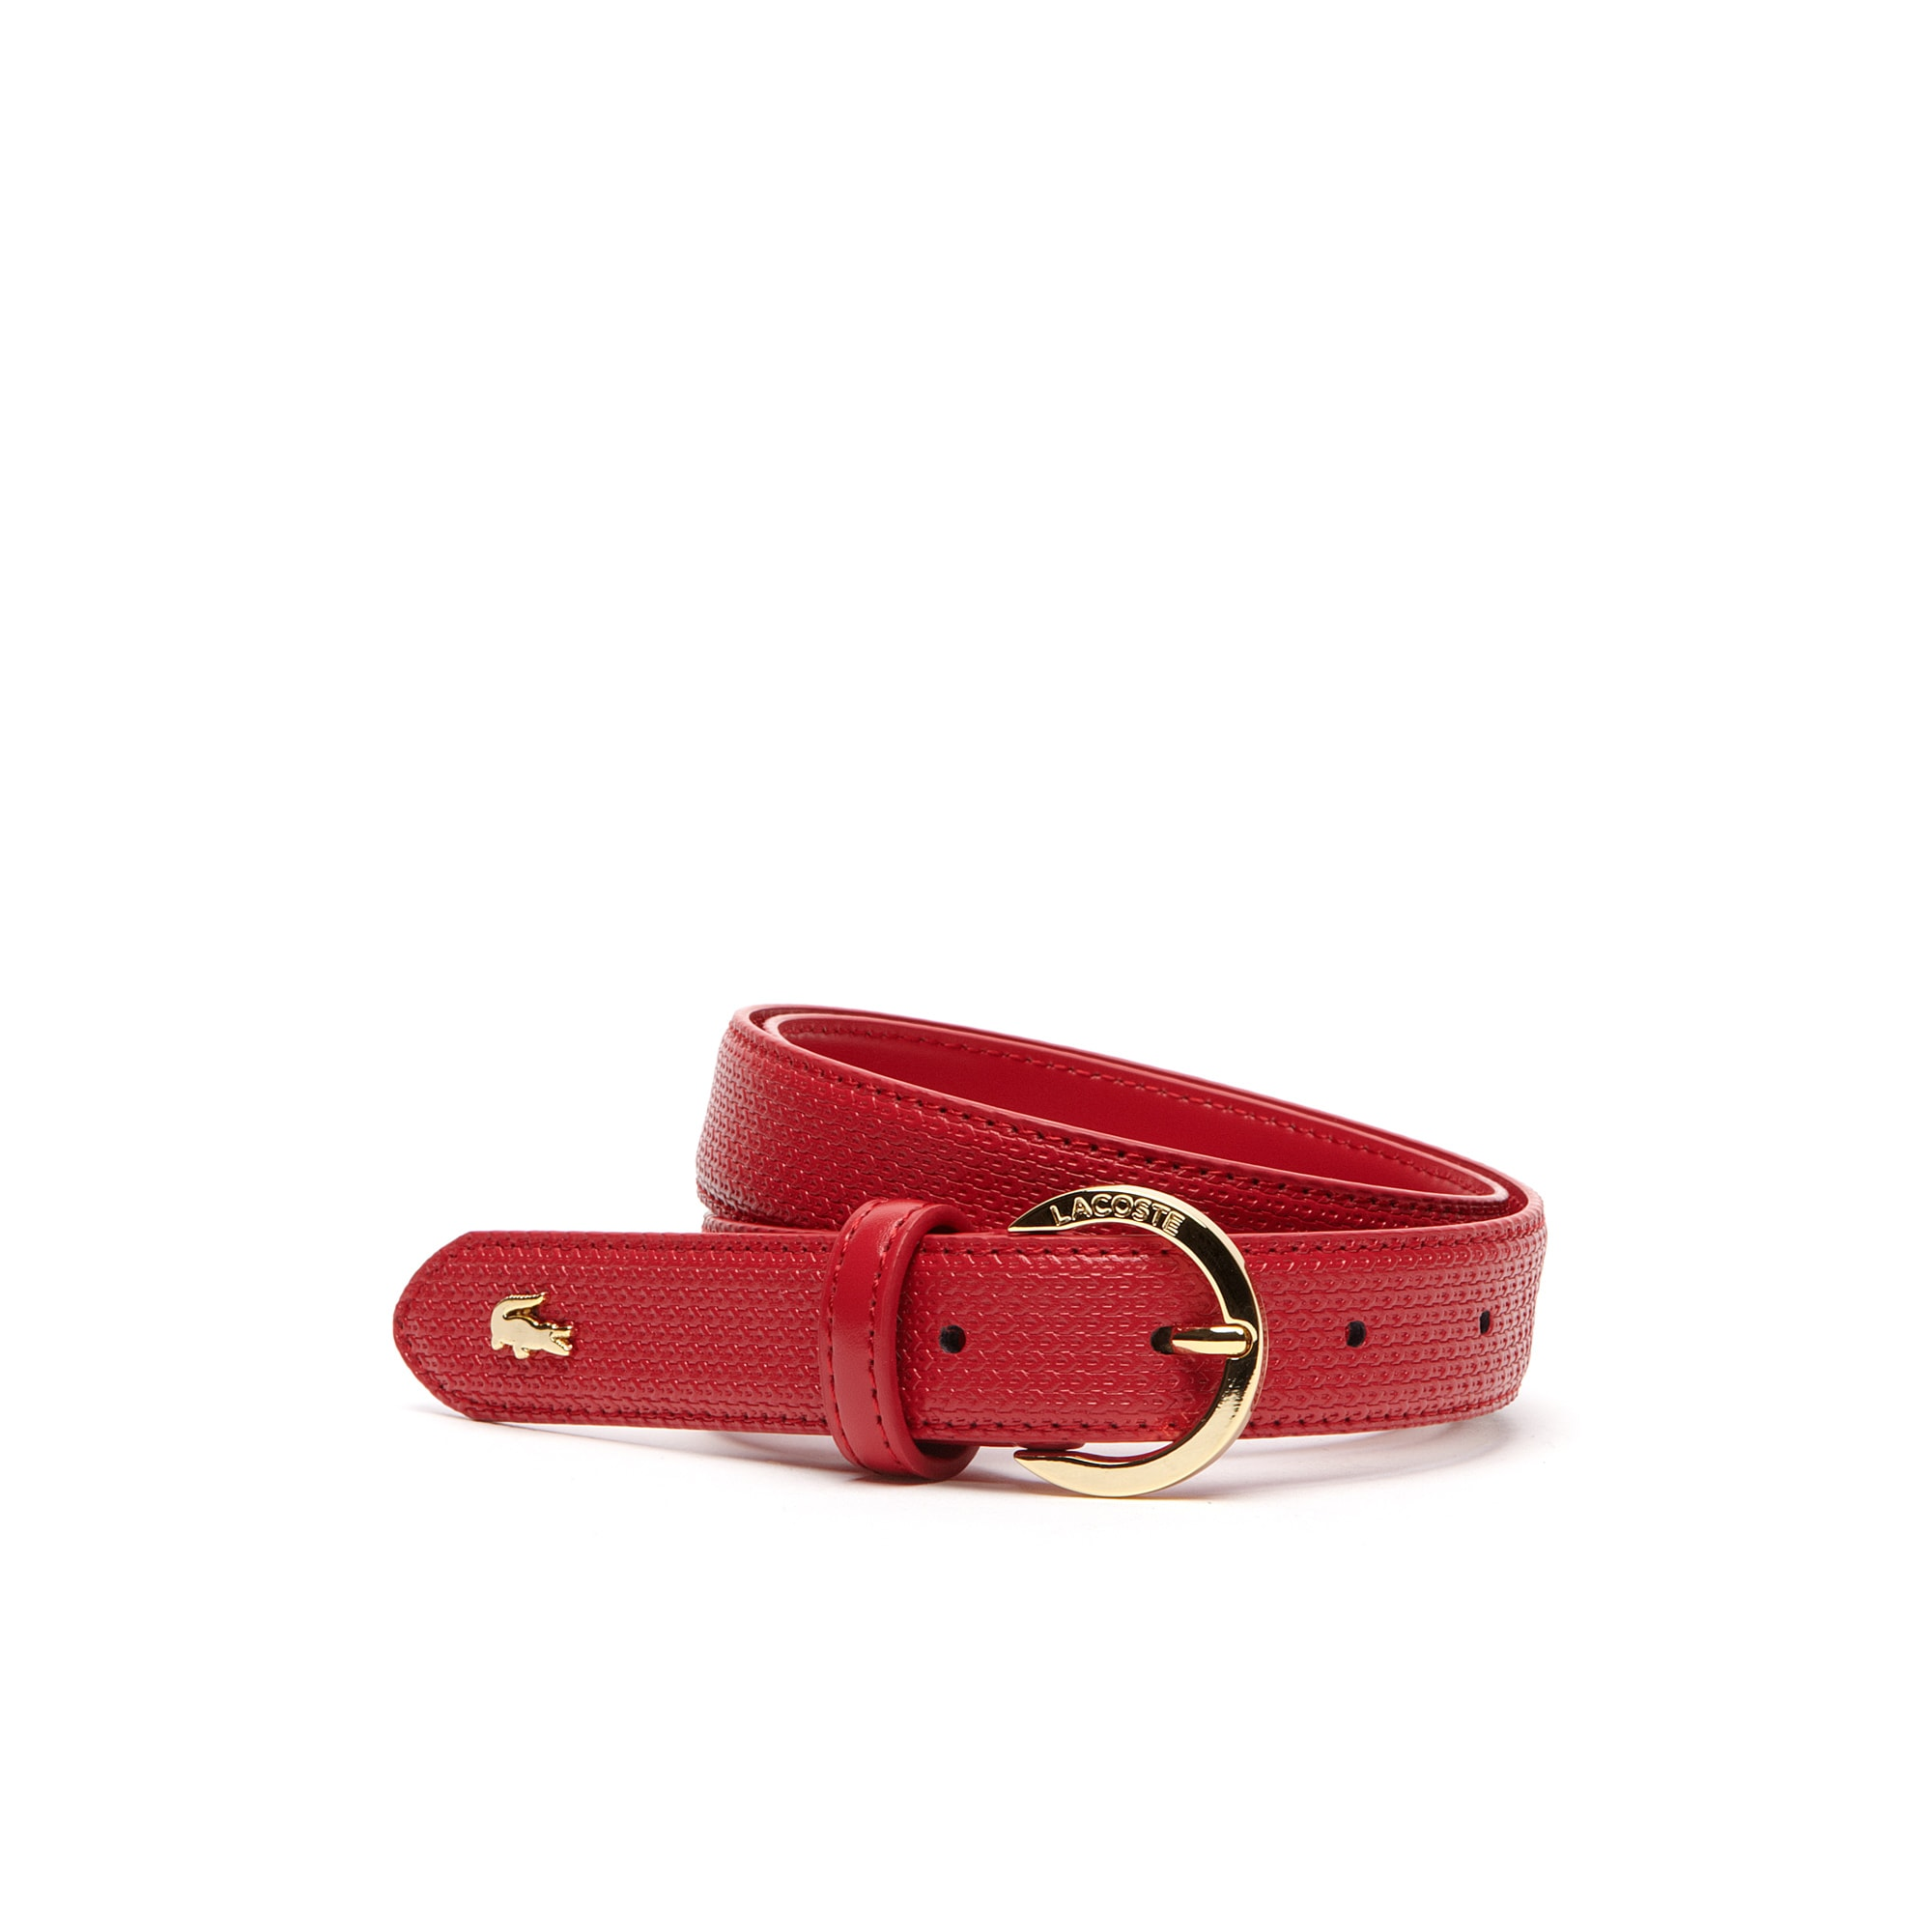 Women's Chantaco belt in fine piqué print leather with gold-tone buckle